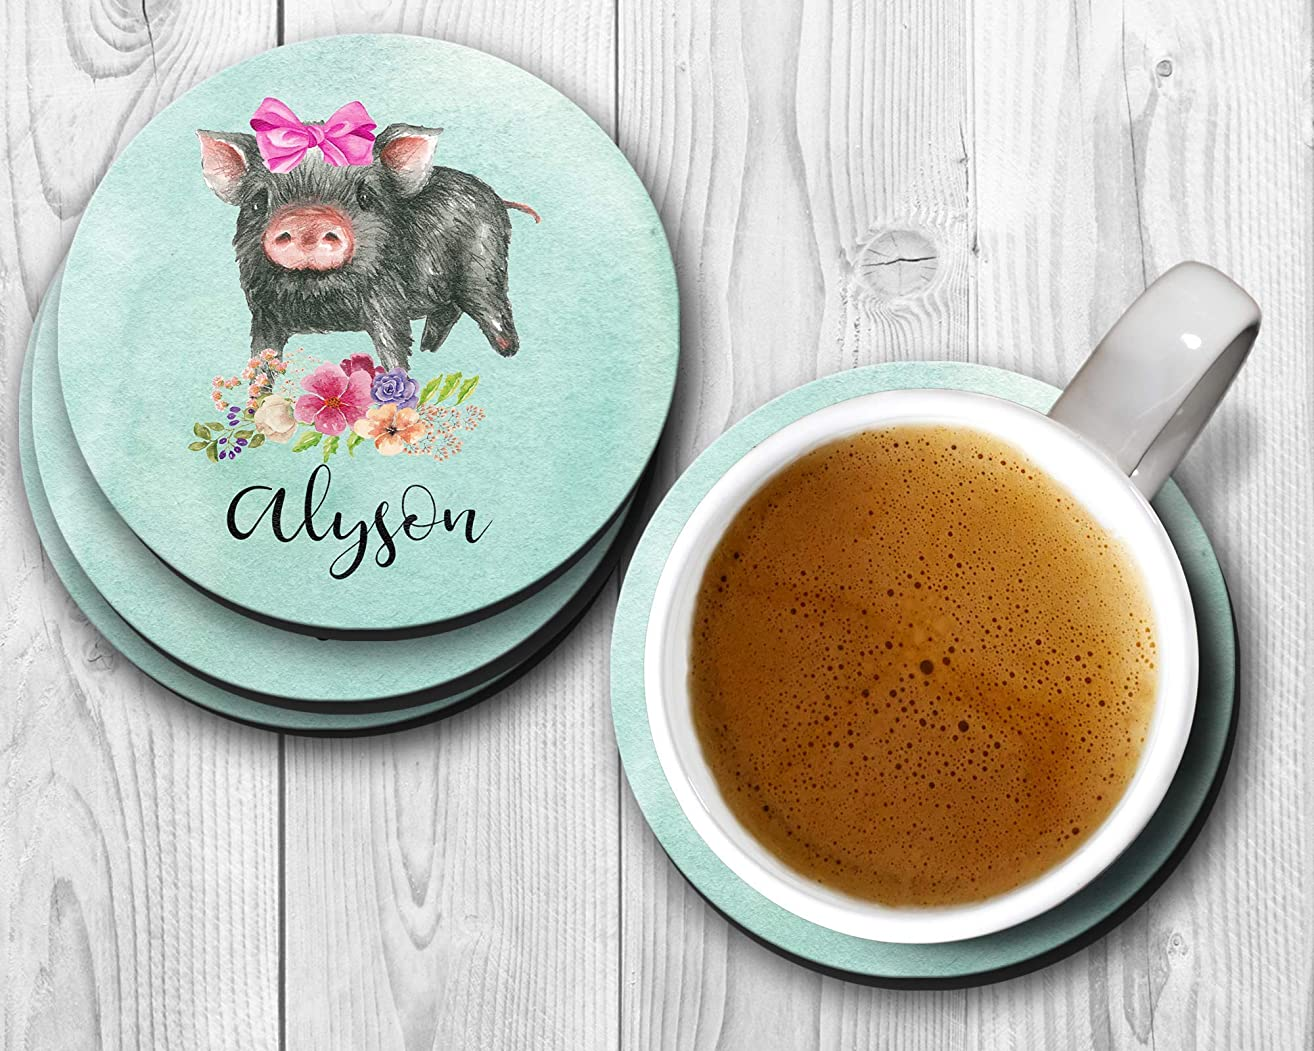 Cute Pig With Pink Bow Personalized Coasters - Set of 4